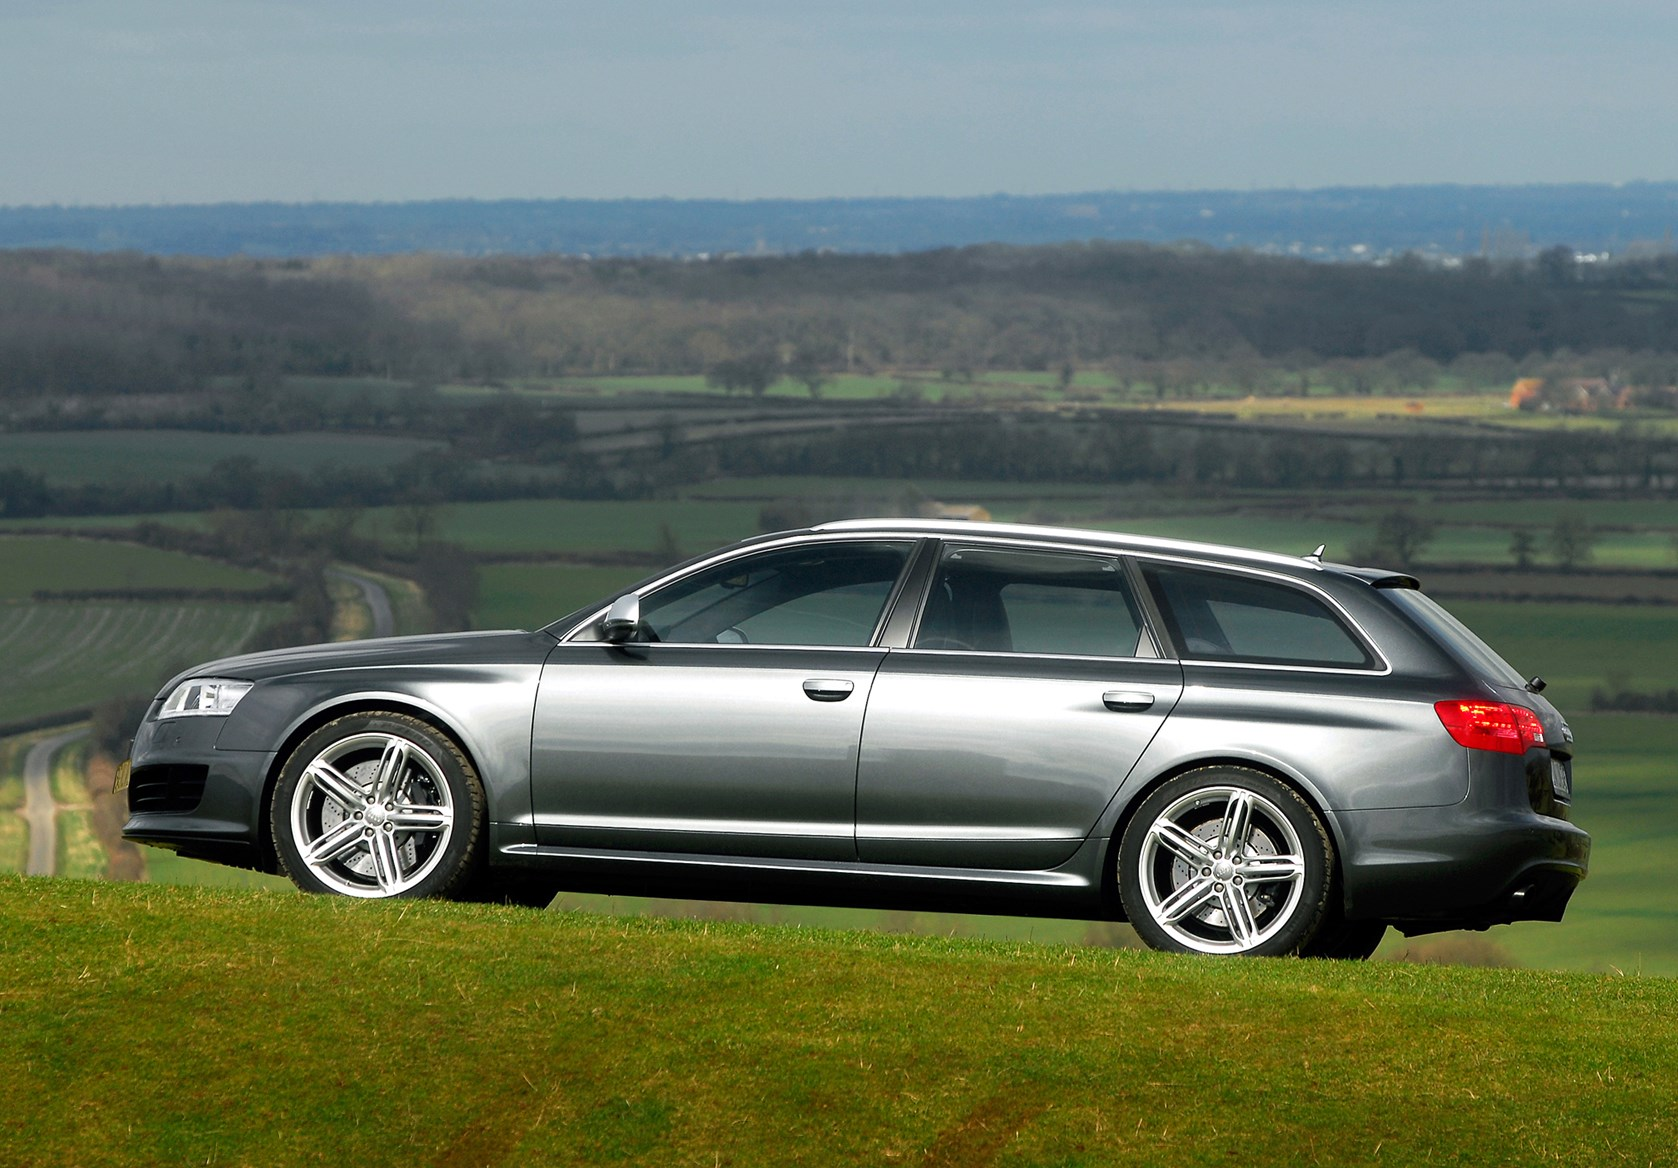 Used Bmw M5 >> Used Audi A6 RS6 (2008 - 2010) Review | Parkers